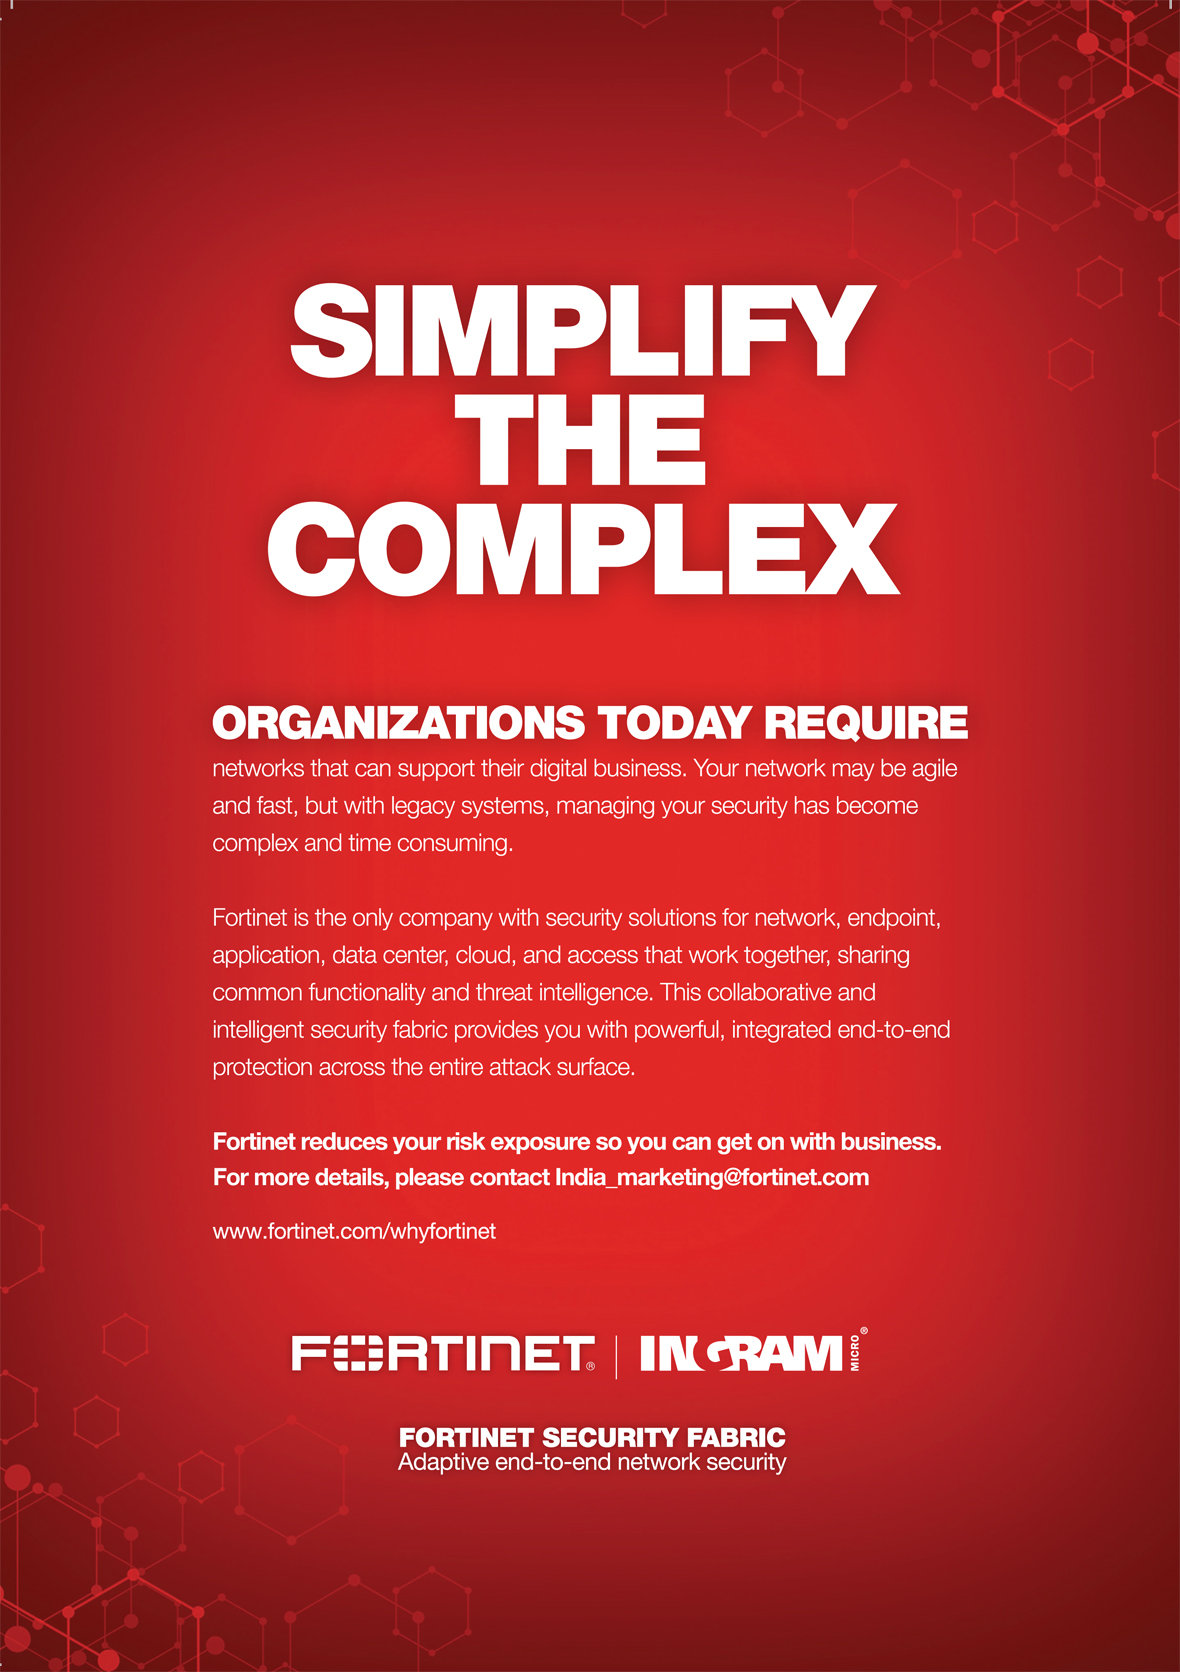 fortinet - Most Advertisement Brand by My Brand Book